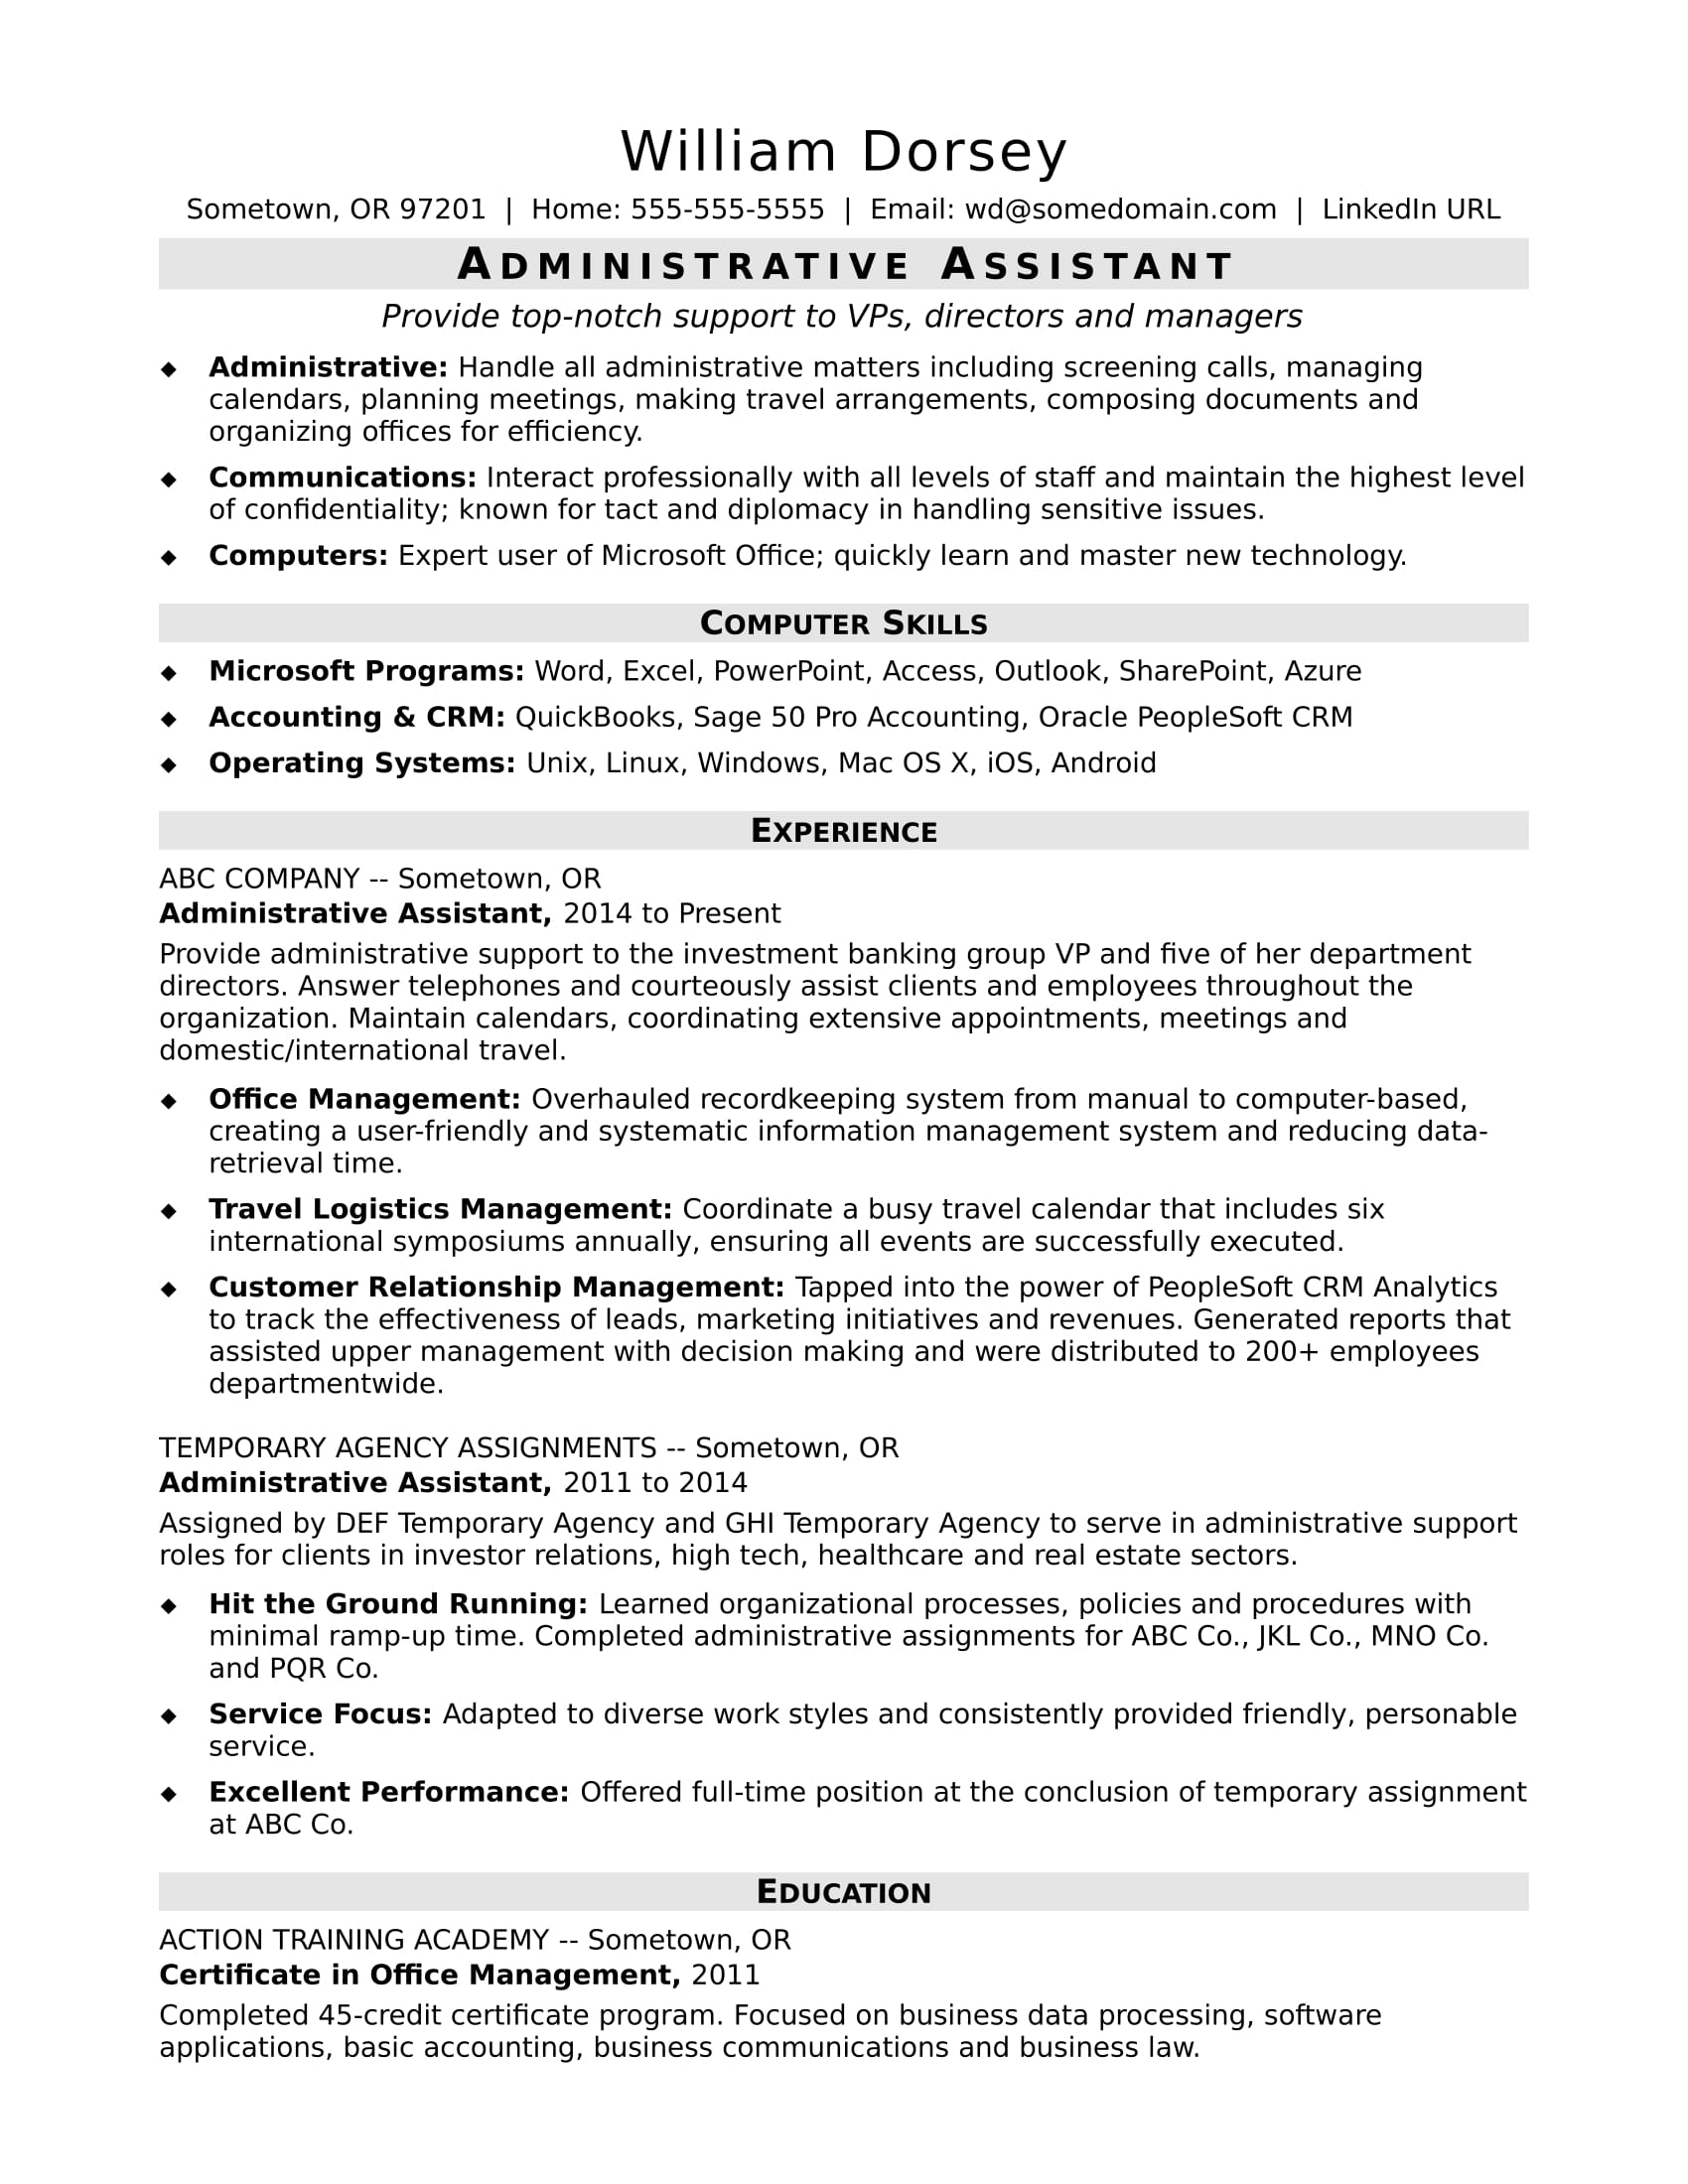 sample resume for a midlevel administrative assistant - Sample Resume Business Communication